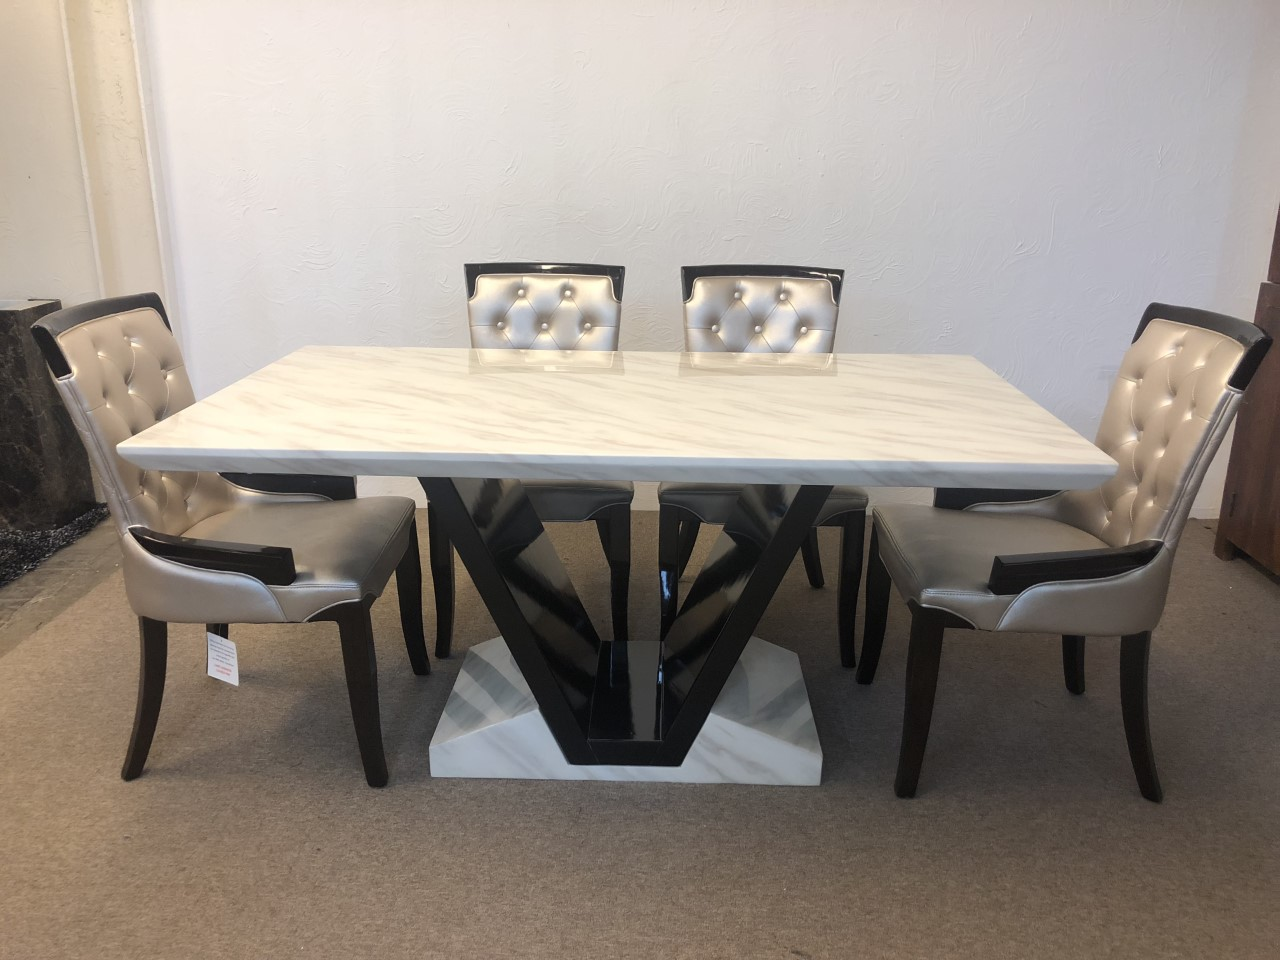 Marble Dining Table And 6 Chairs: Munich 160cm Marble Dining Table And 6 Gold Straightback